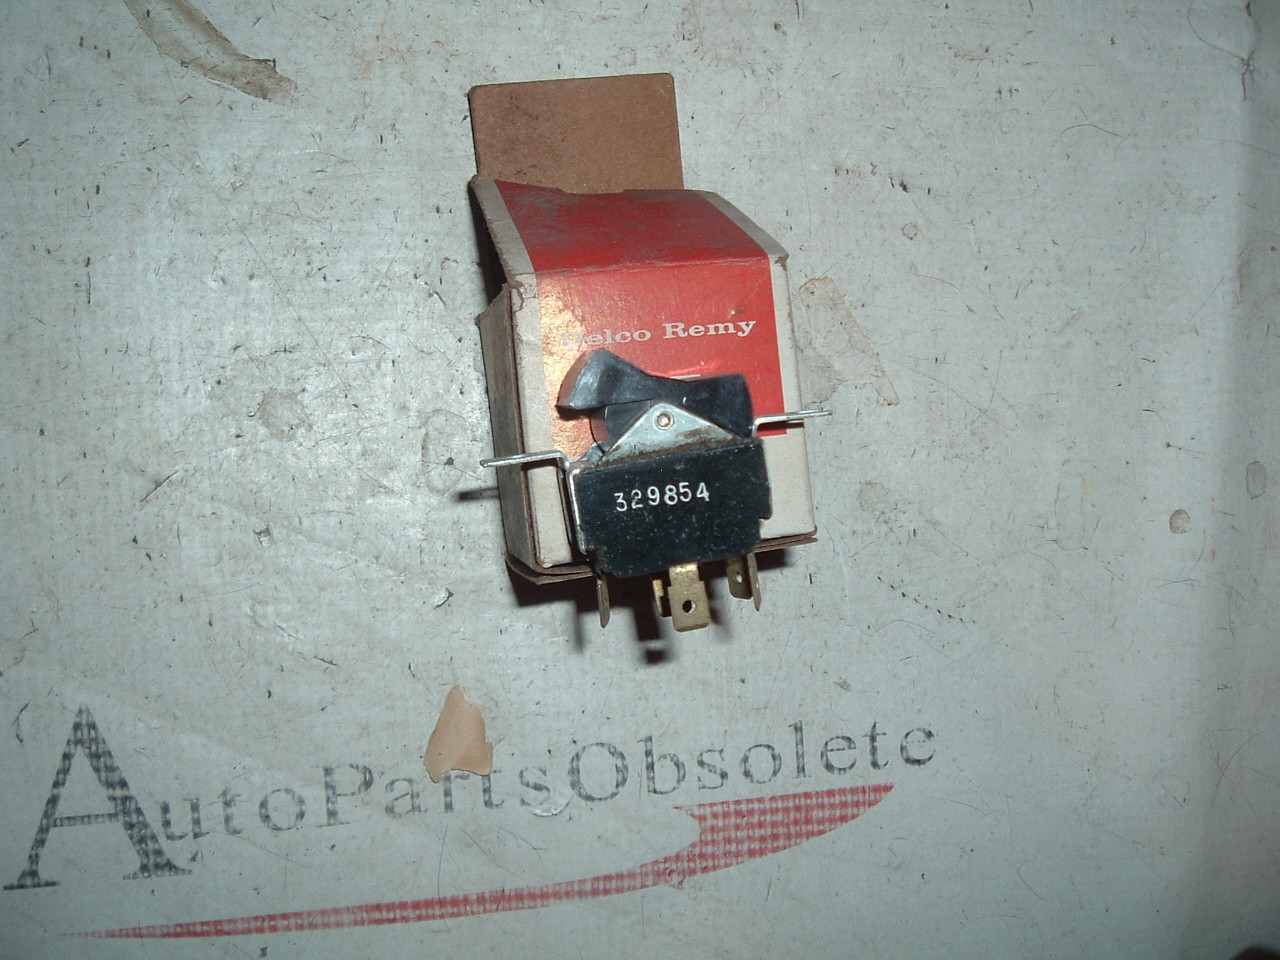 View Product1973 74 75 76 77 78 79 80 81 Chevrolet truck dual gas tank switch NOS GM 329854 (z 329854)